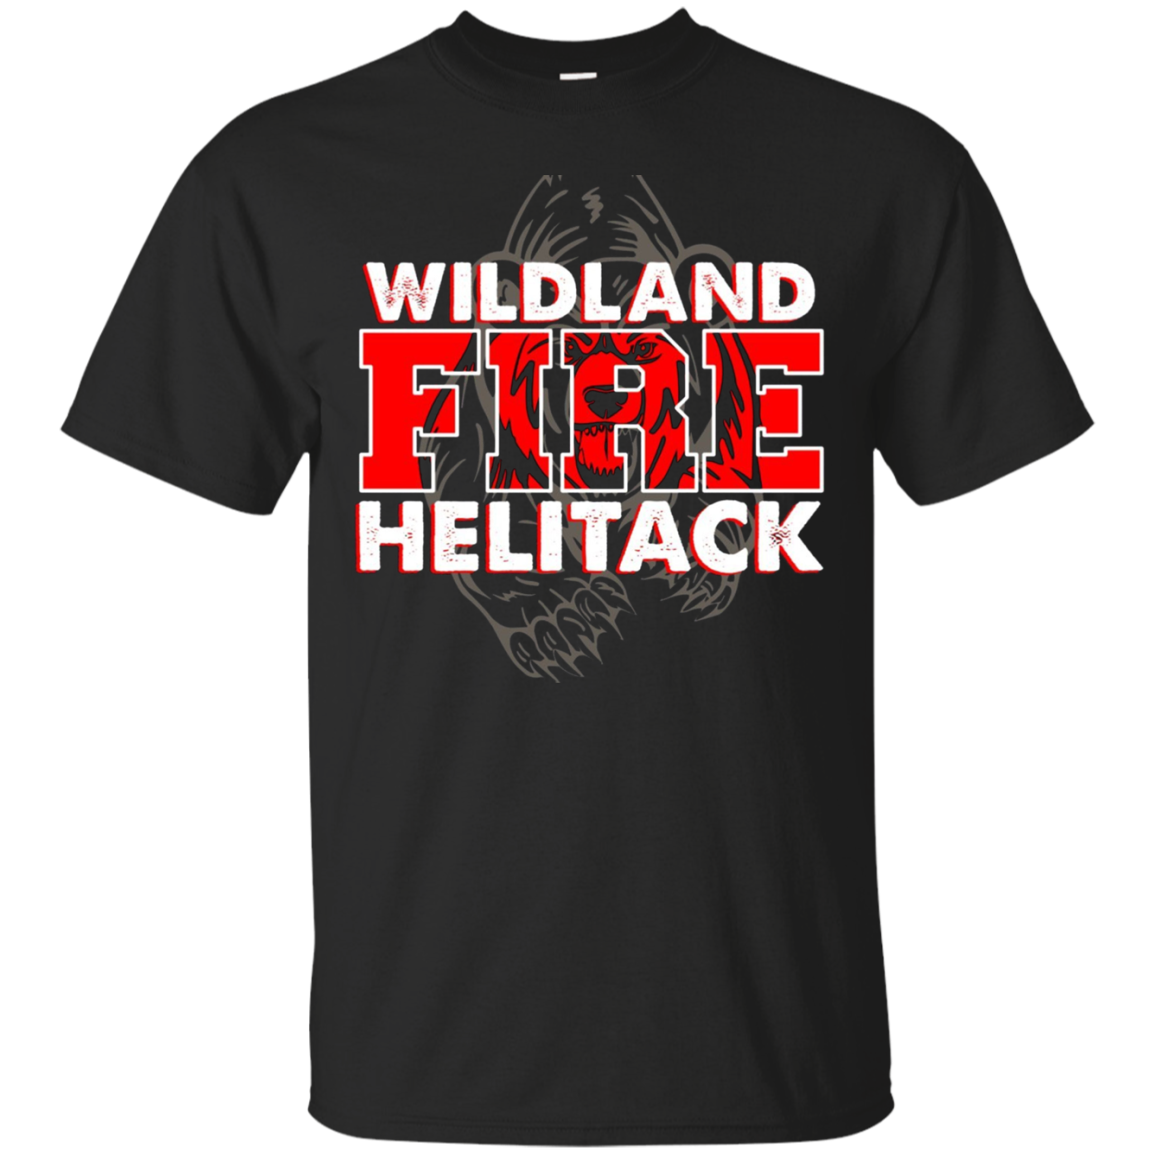 Wildland Helitack Crew Fire Rescue Firefighter Shirt